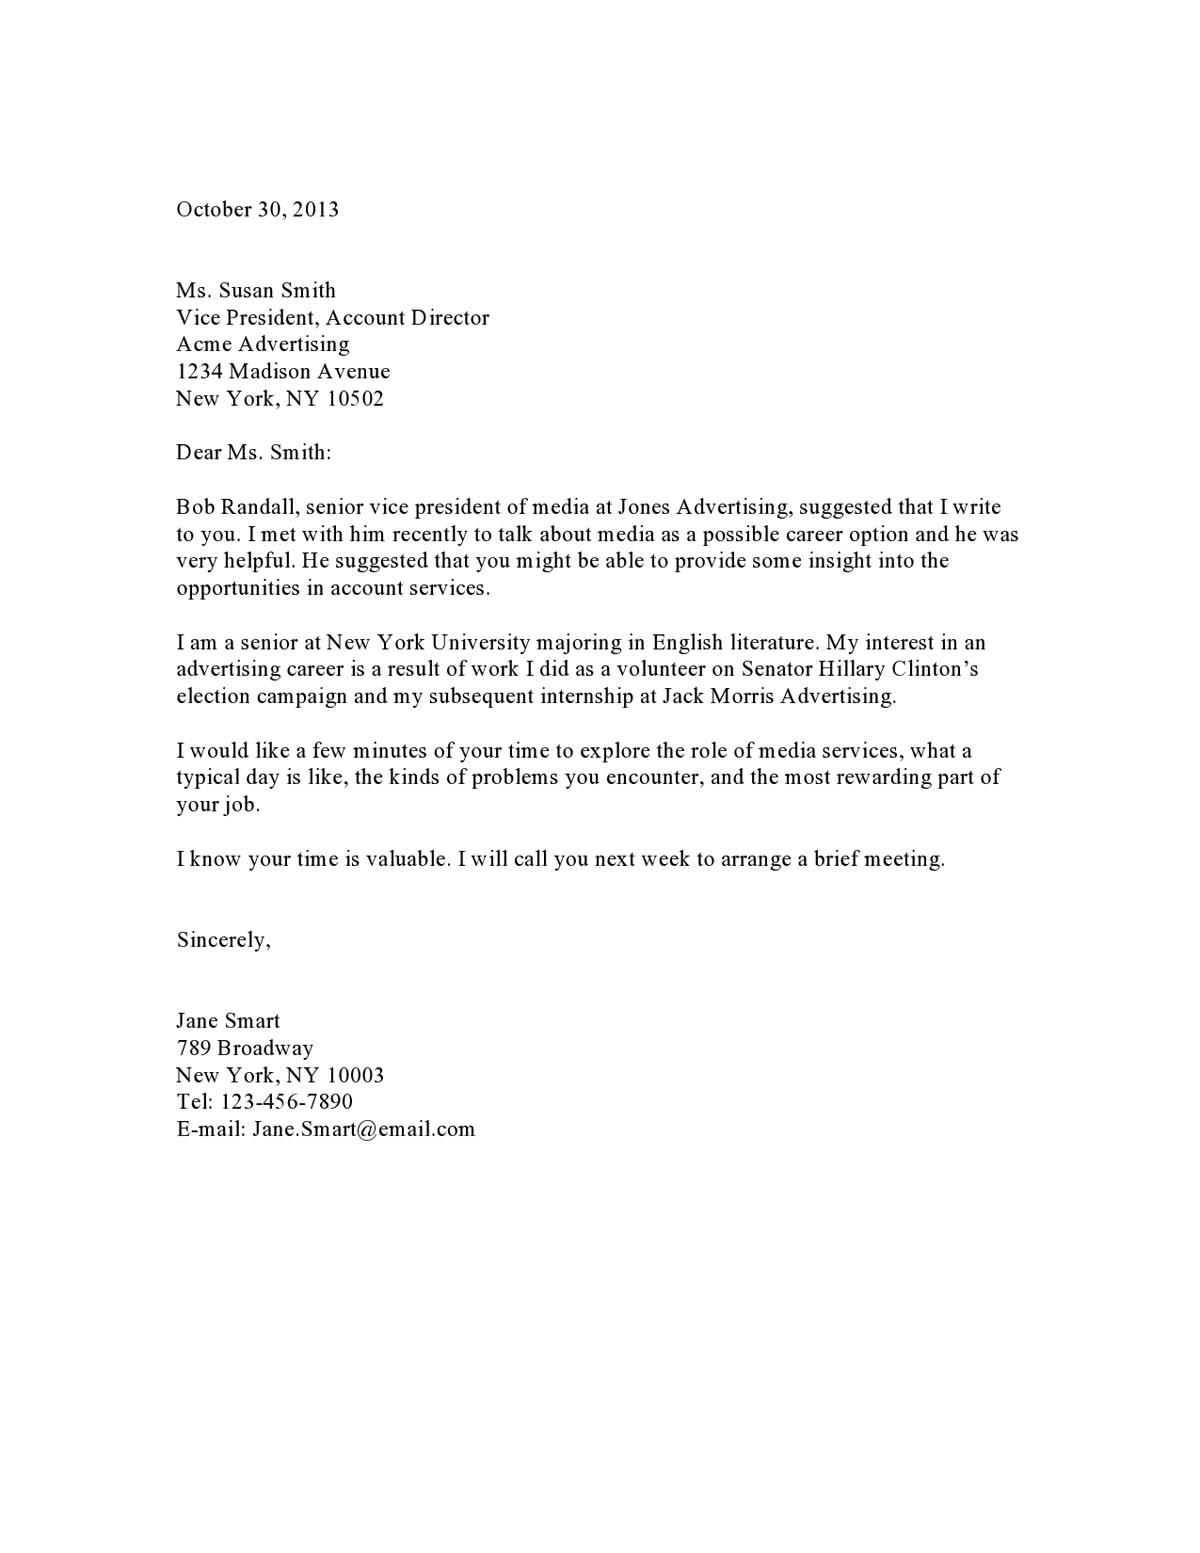 cover letter tmeplate - sample cover letter for applying a job